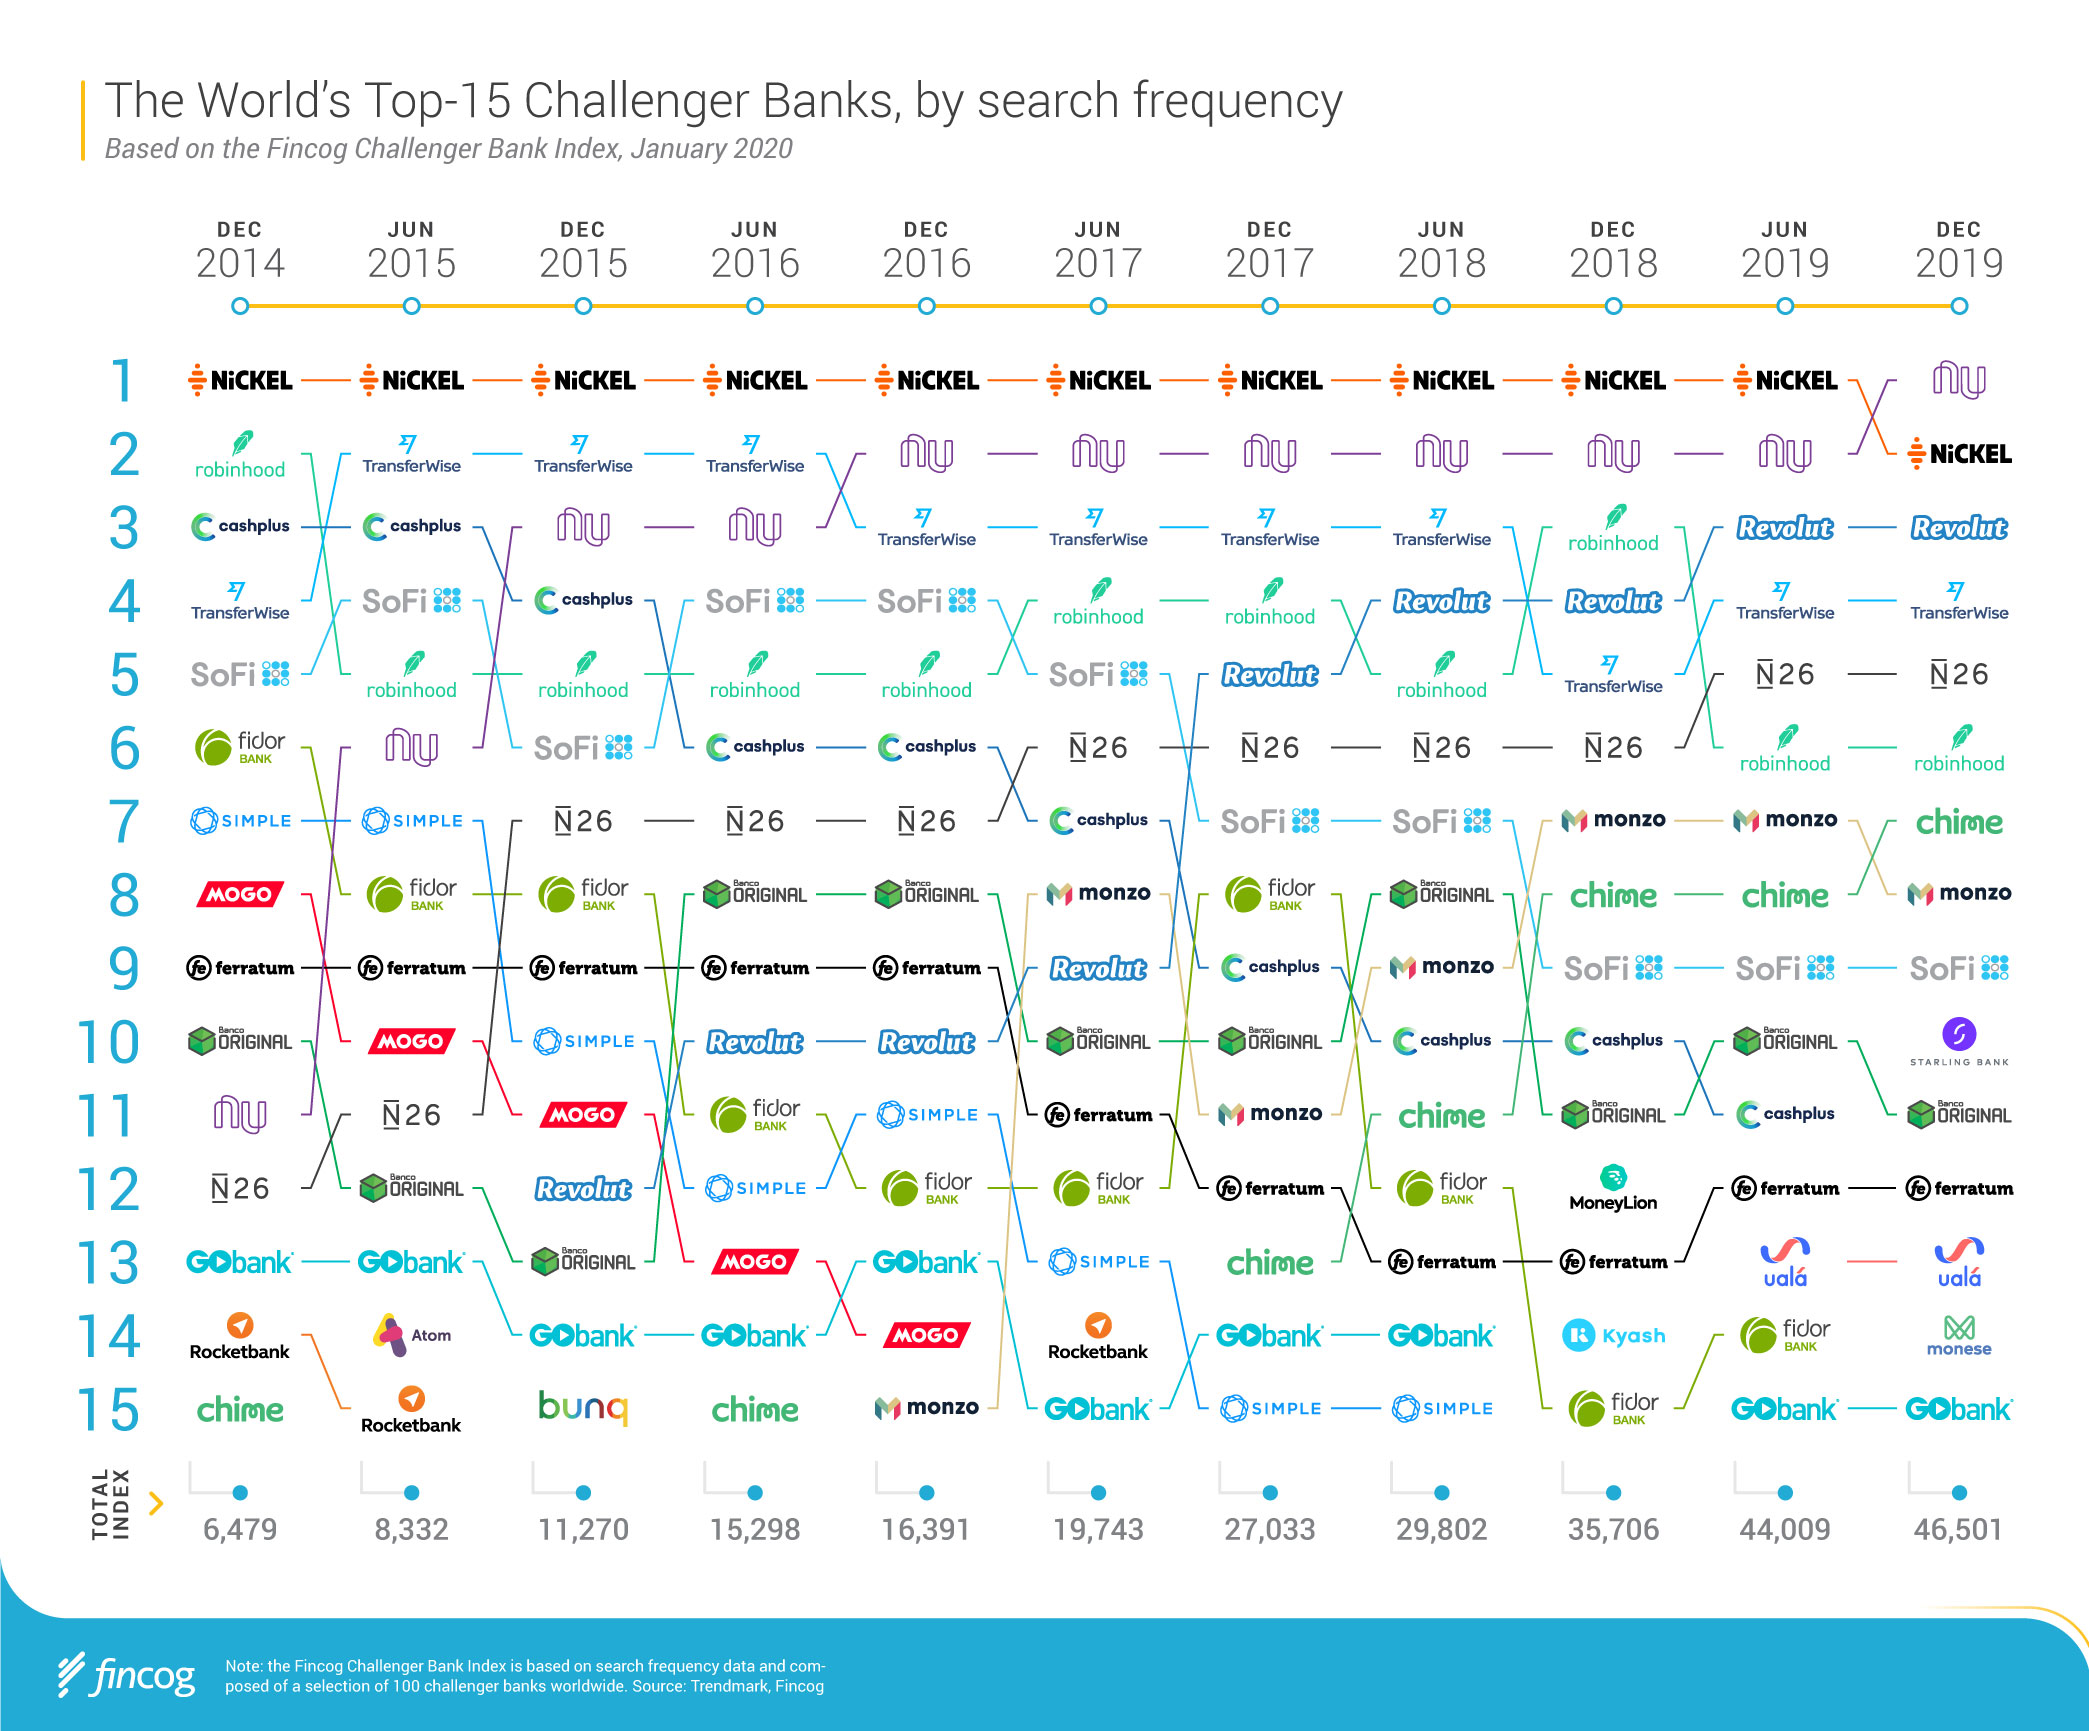 The World's Top 15 Challenger Banks by search frequency, Fincog, January 2020